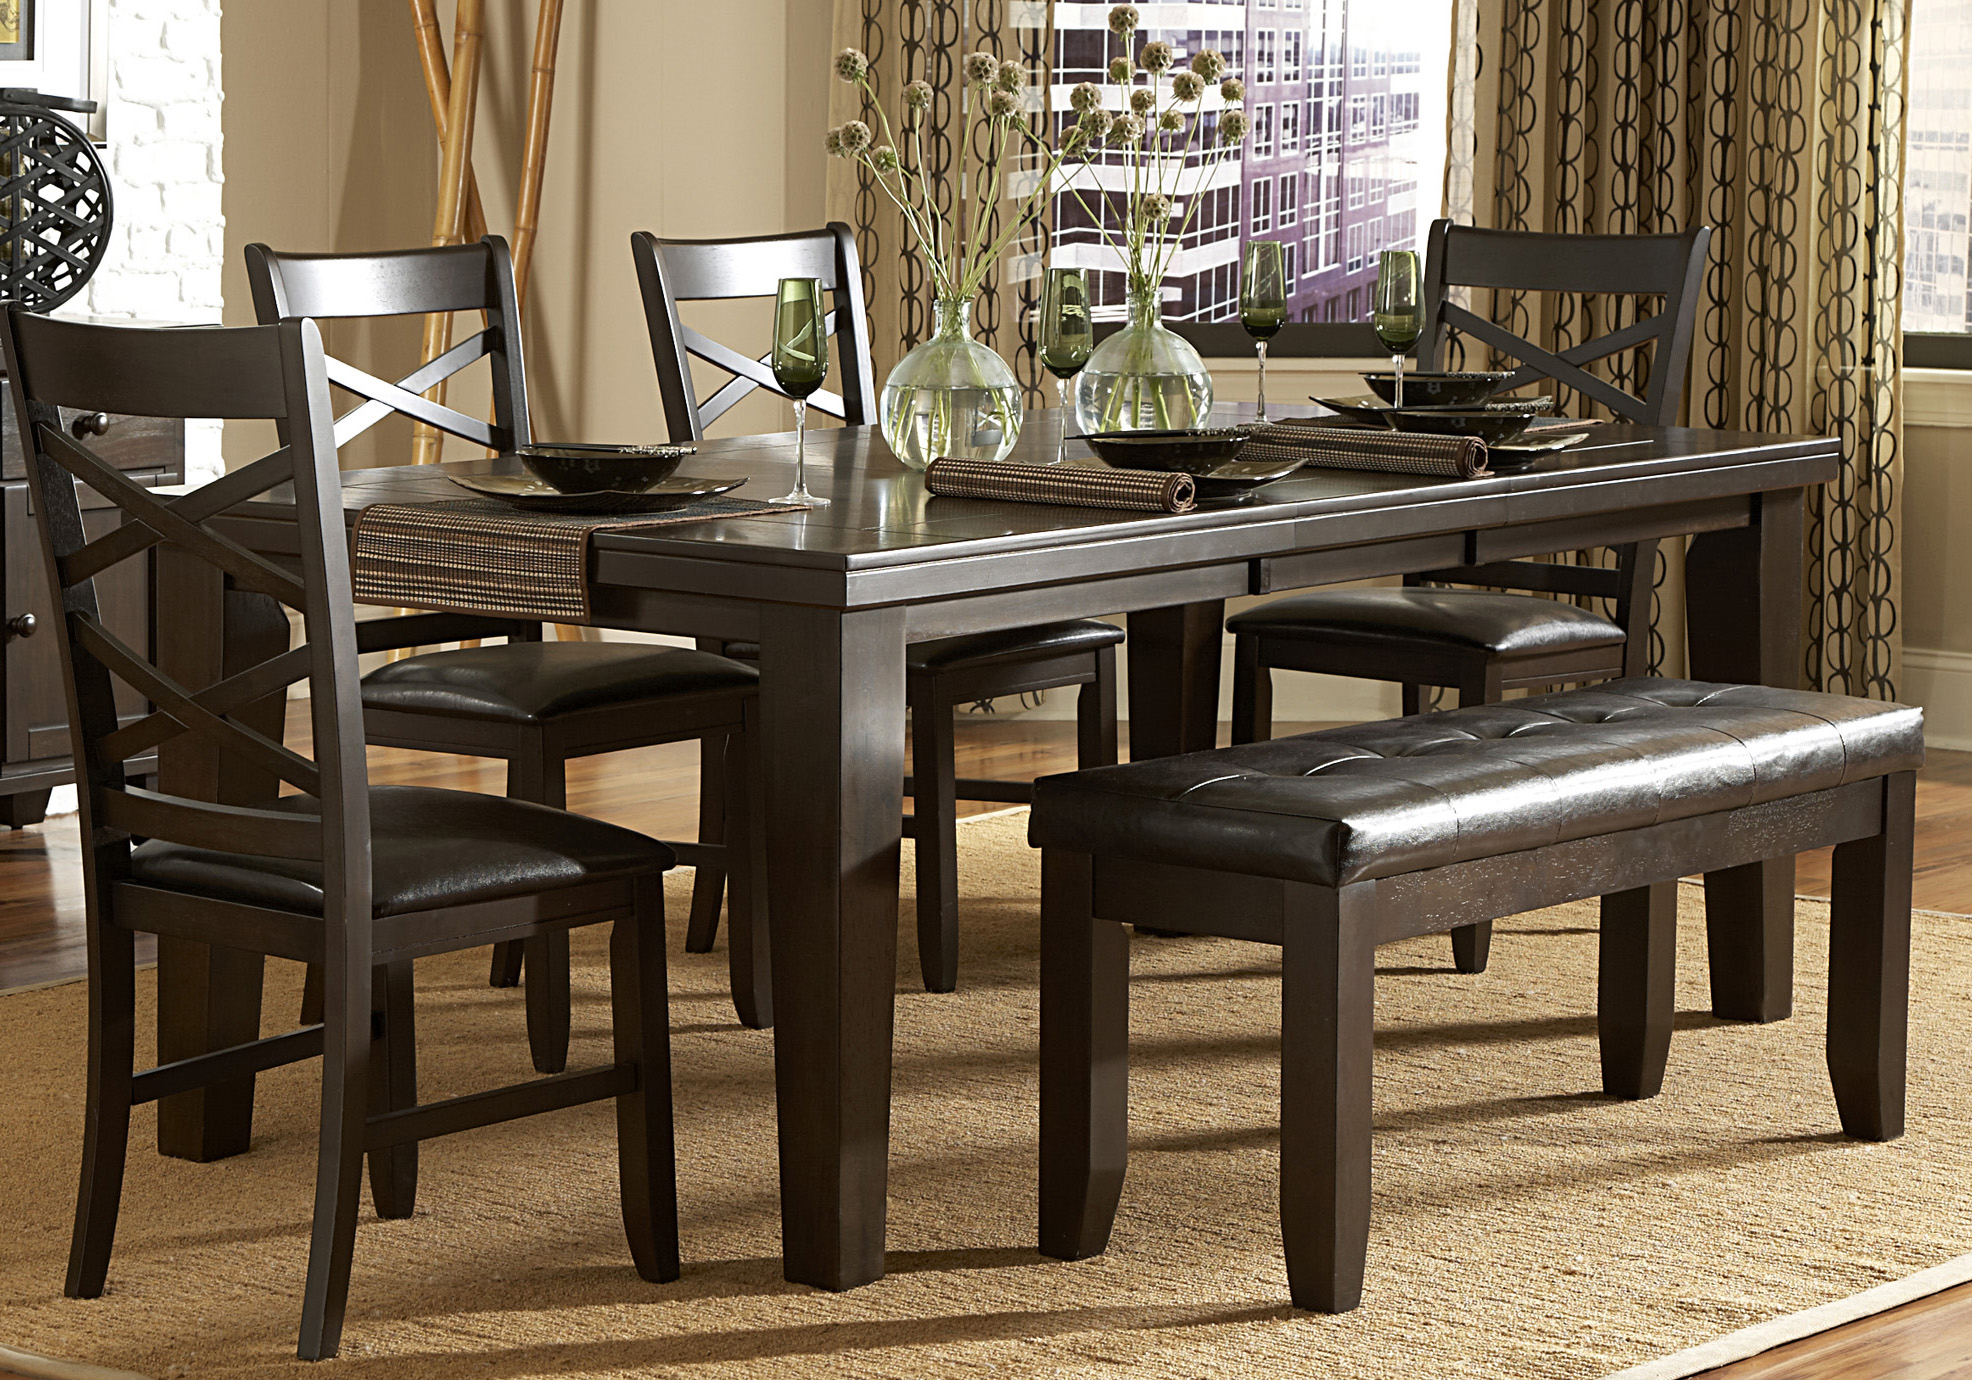 Dining room tables dallas tx dining room tables dallas tx dining table dining tables Dining room furniture dallas